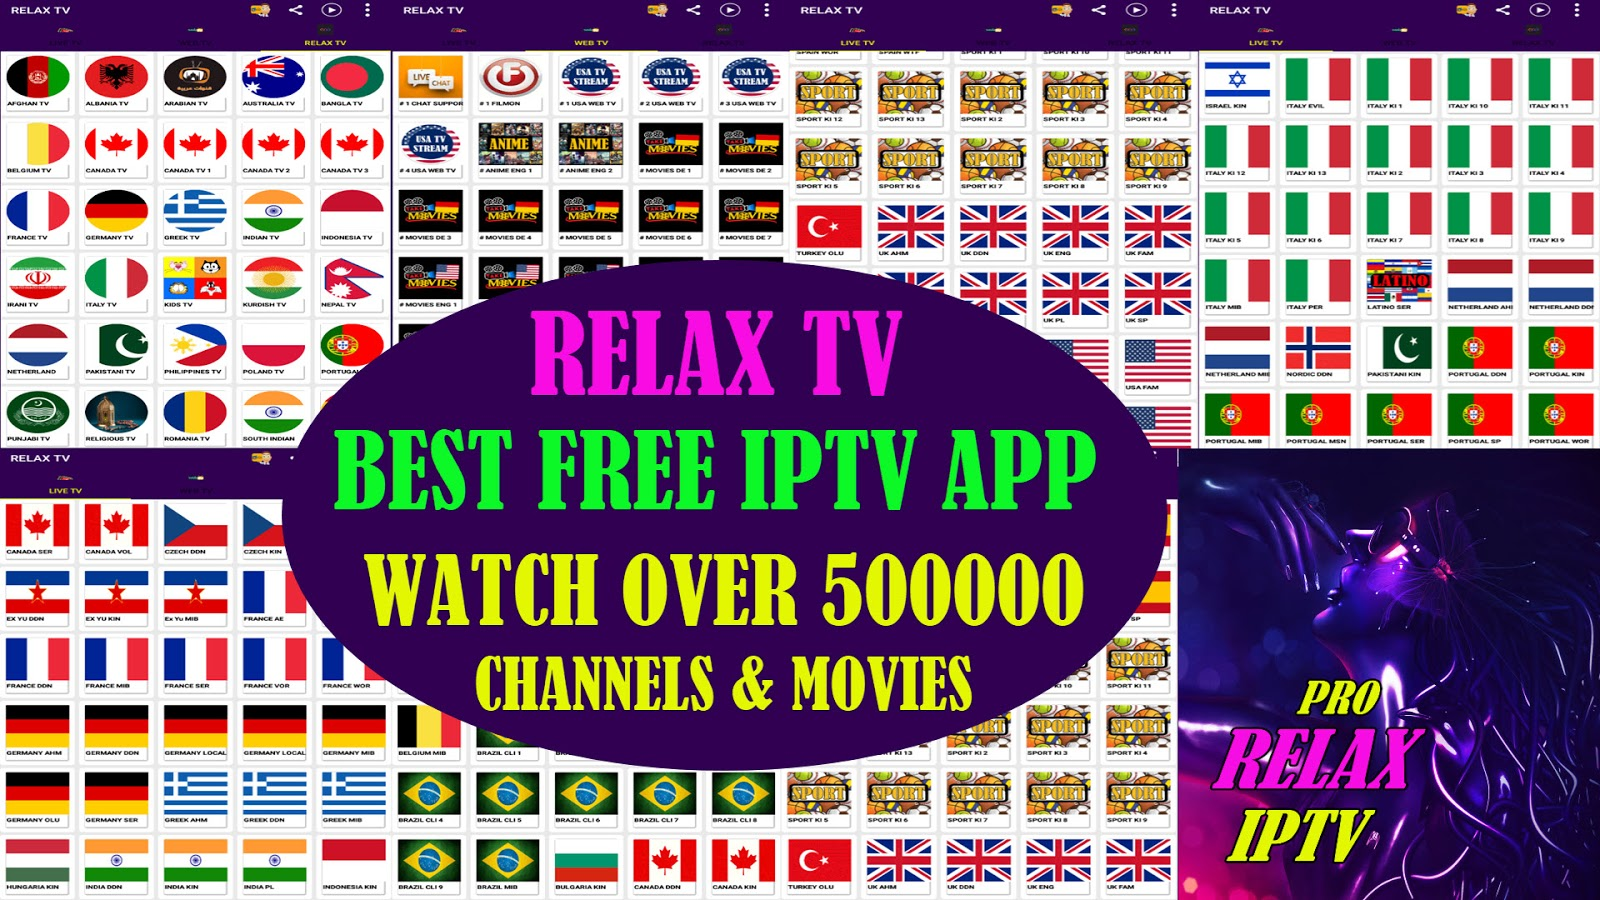 RELAX TV BEST FREE IPTV & WATCH OVER 50000 CHANNELS ON YOUR